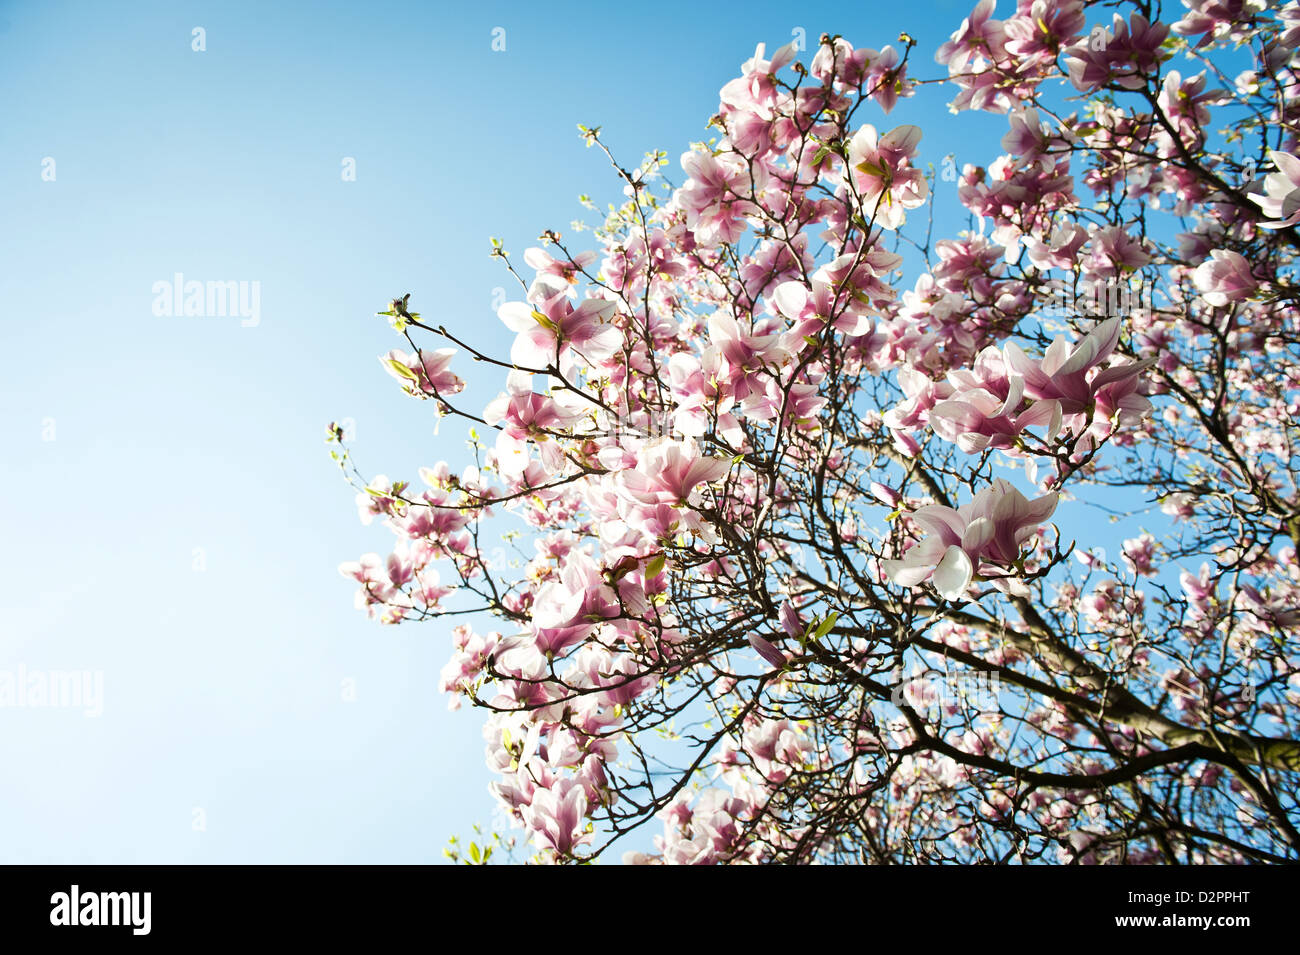 blooming magnolia tree with clear blue sky in background Stock Photo